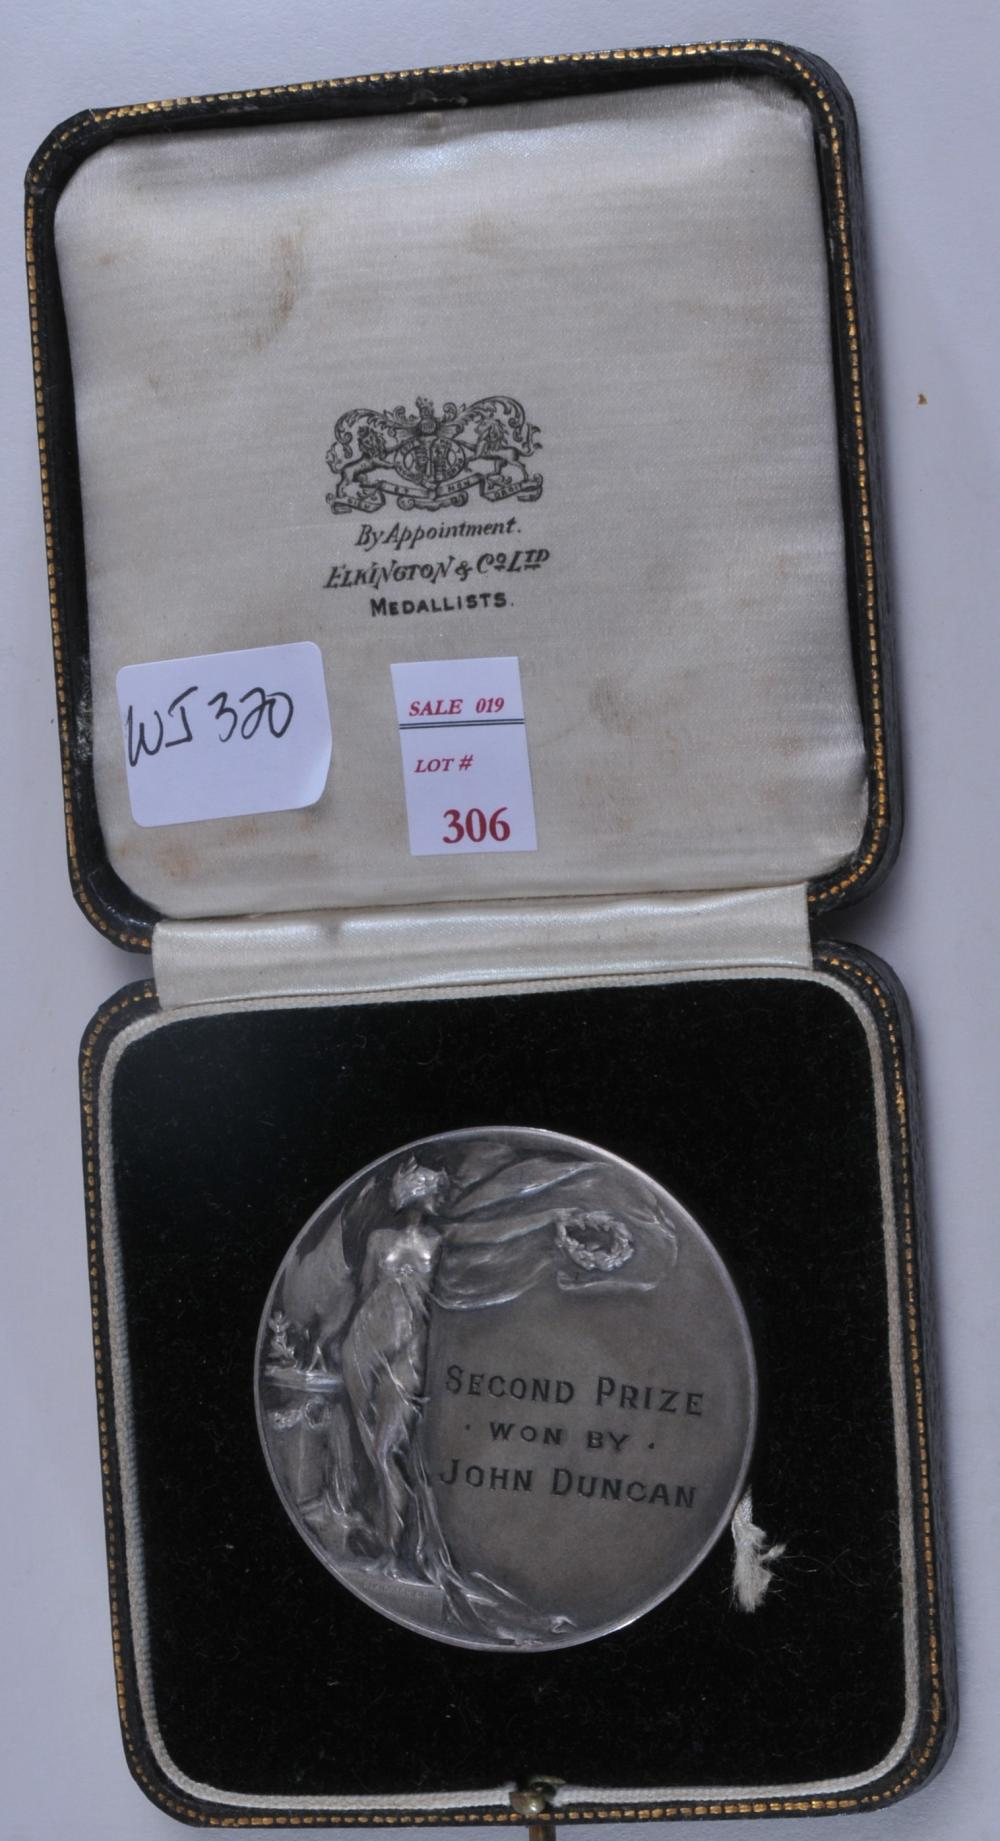 """Lot 306: 1932 silver Scottish Boxing Medal in case. Engraved """"2nd Prize won by John Duncan"""". On reverse- """"Scottish Heavyweight Speed Championship 1932"""". Marked Silver. 2"""" diameter. 1.8 ozt."""